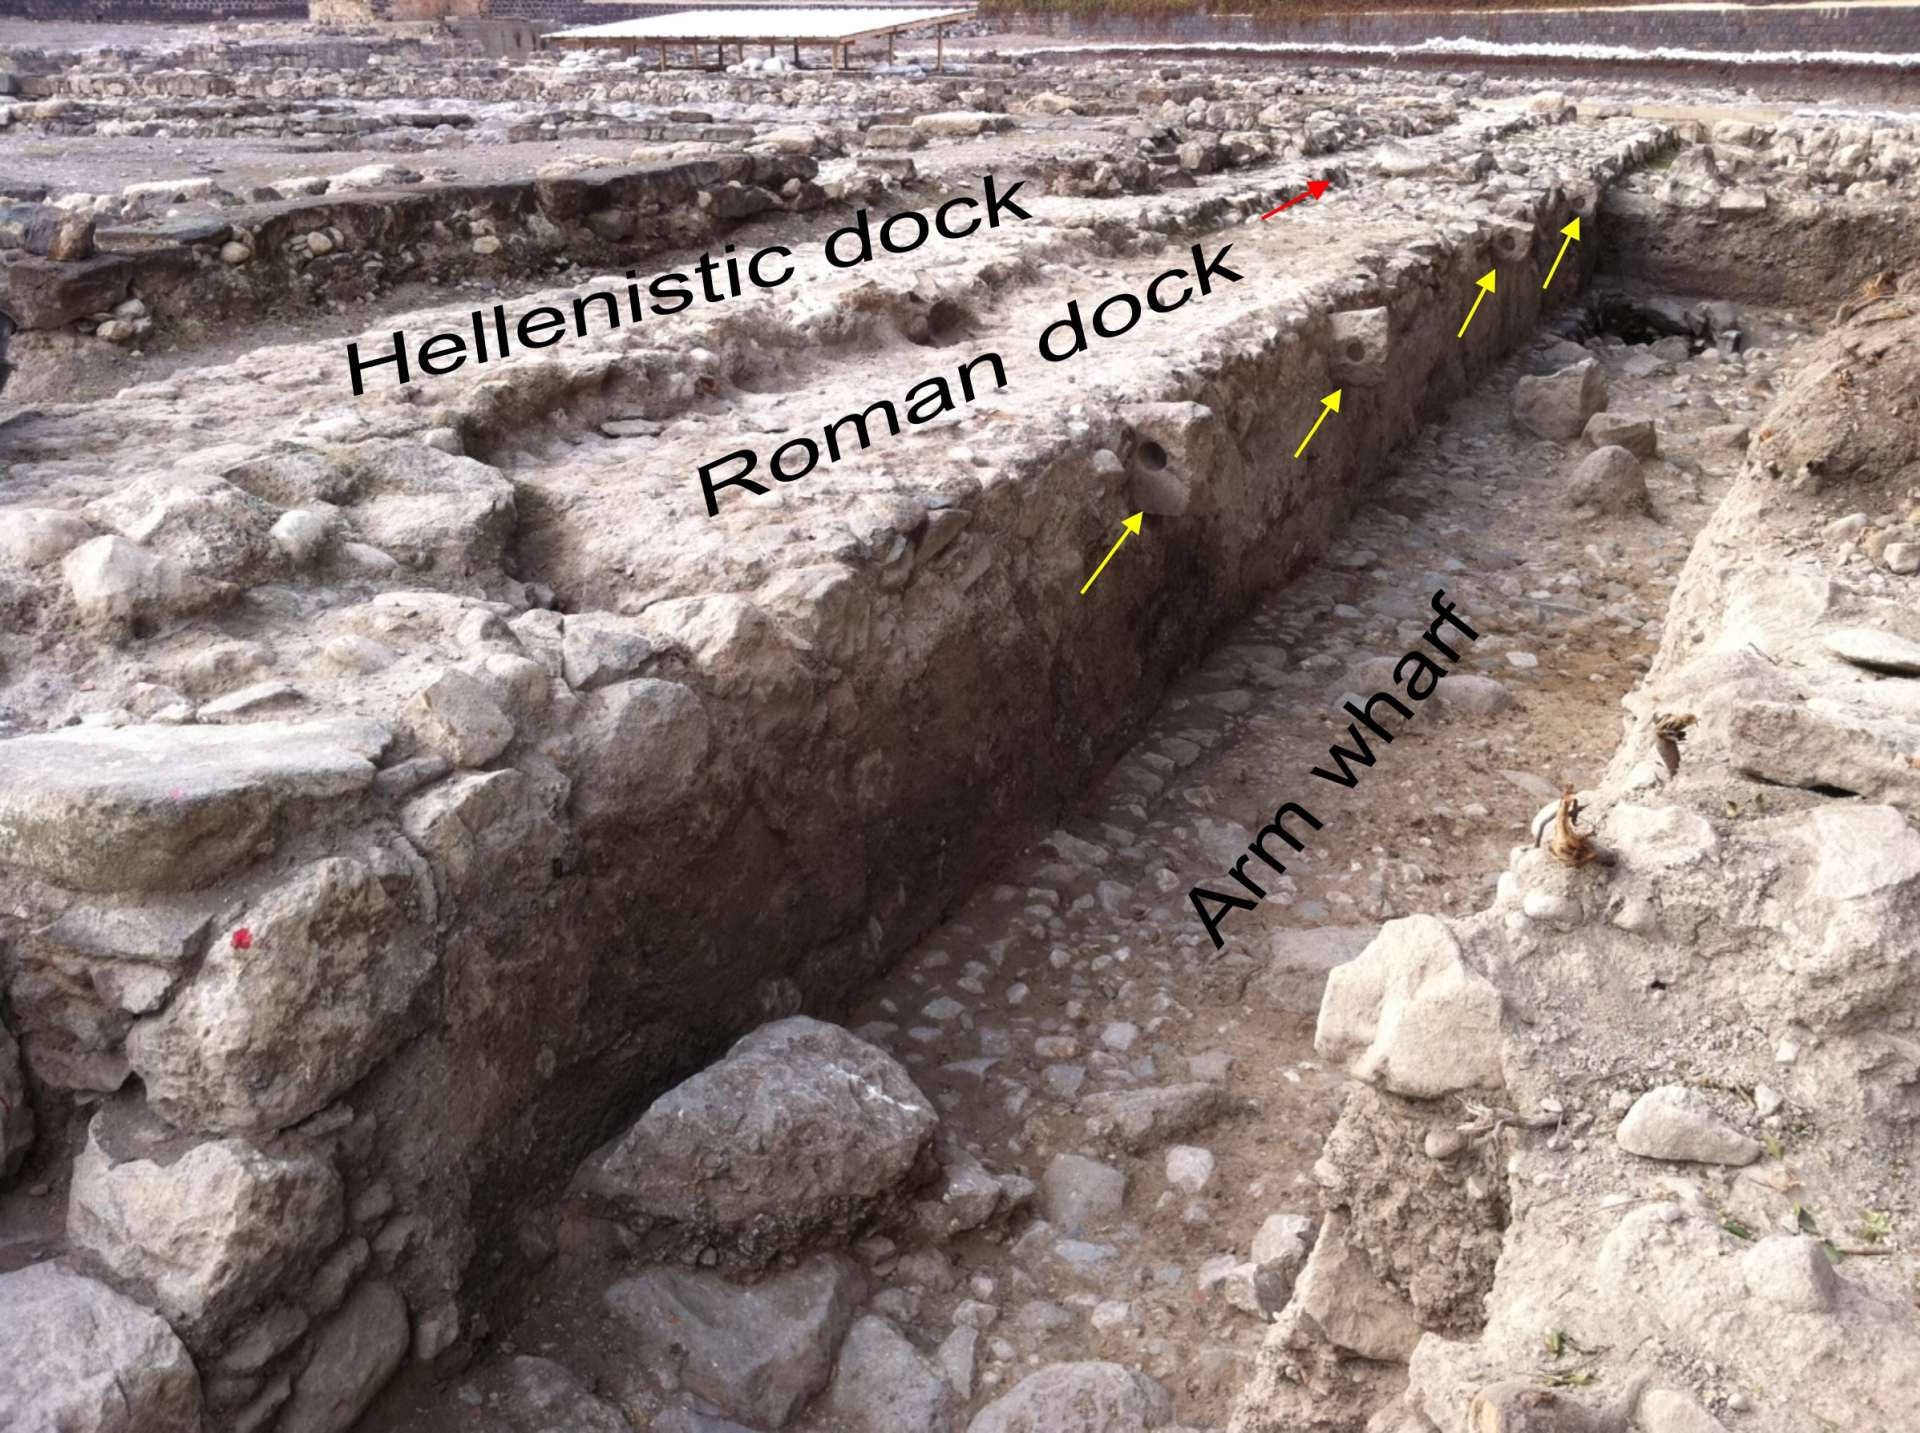 Magdala_Harbour_structures